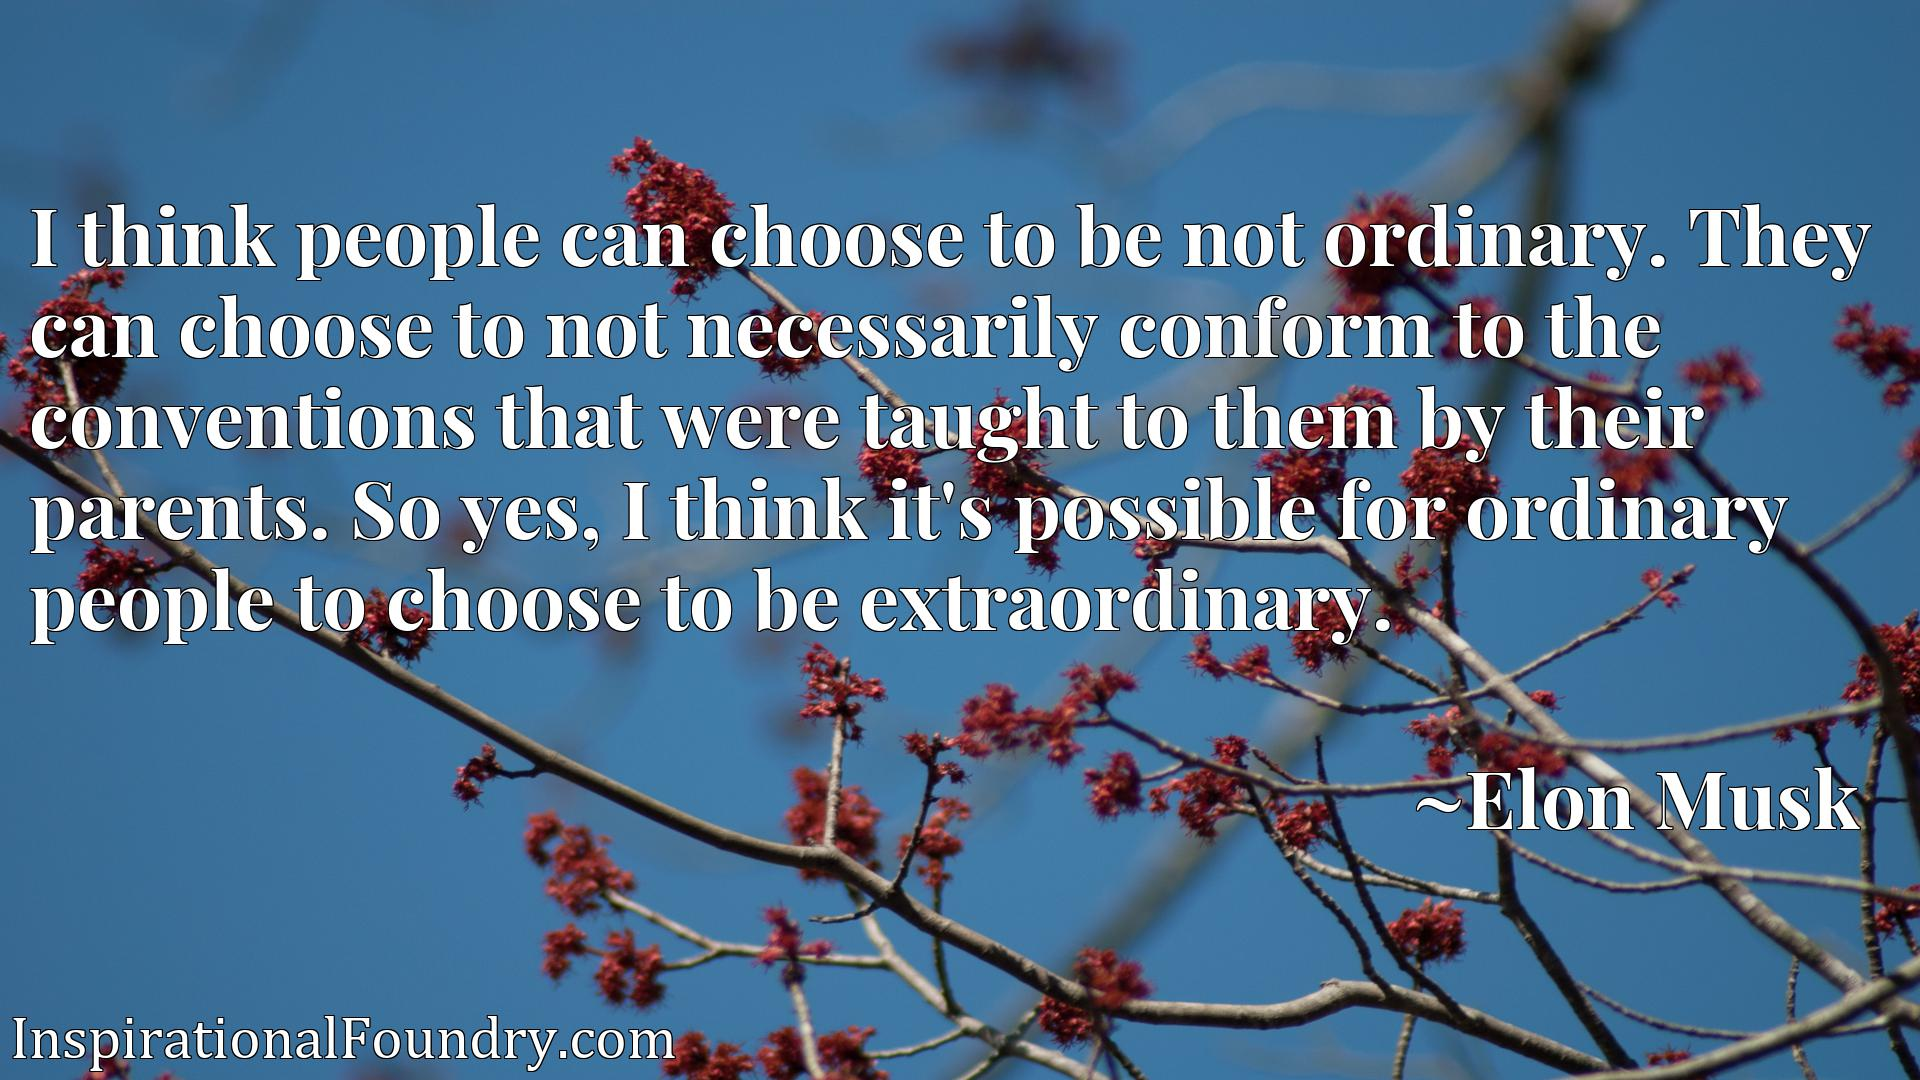 I think people can choose to be not ordinary. They can choose to not necessarily conform to the conventions that were taught to them by their parents. So yes, I think it's possible for ordinary people to choose to be extraordinary.